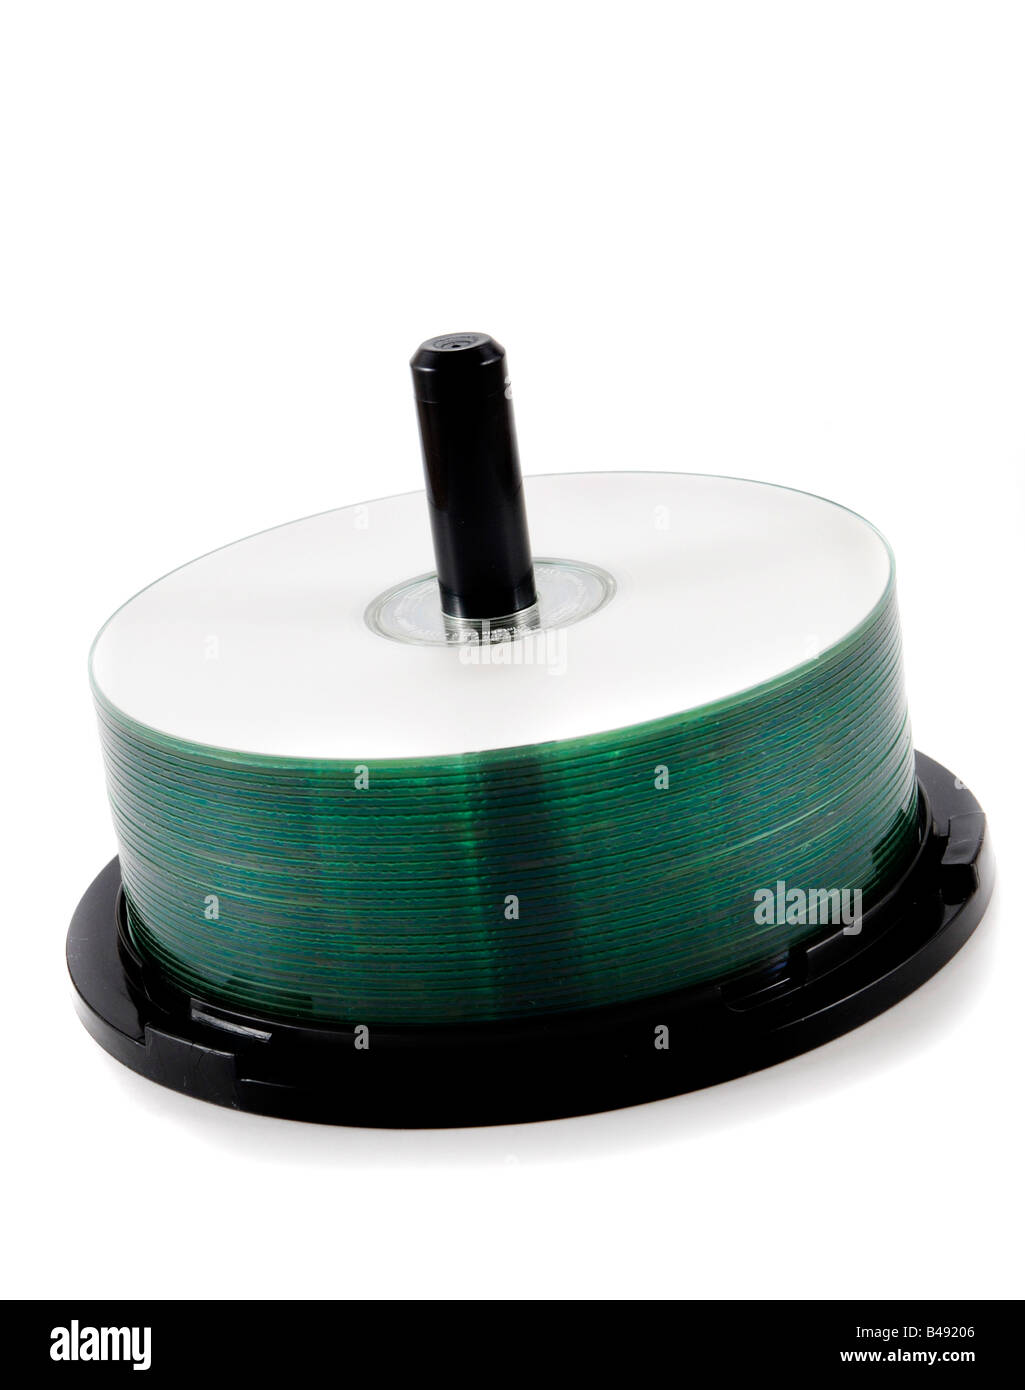 cds on spindle - Stock Image